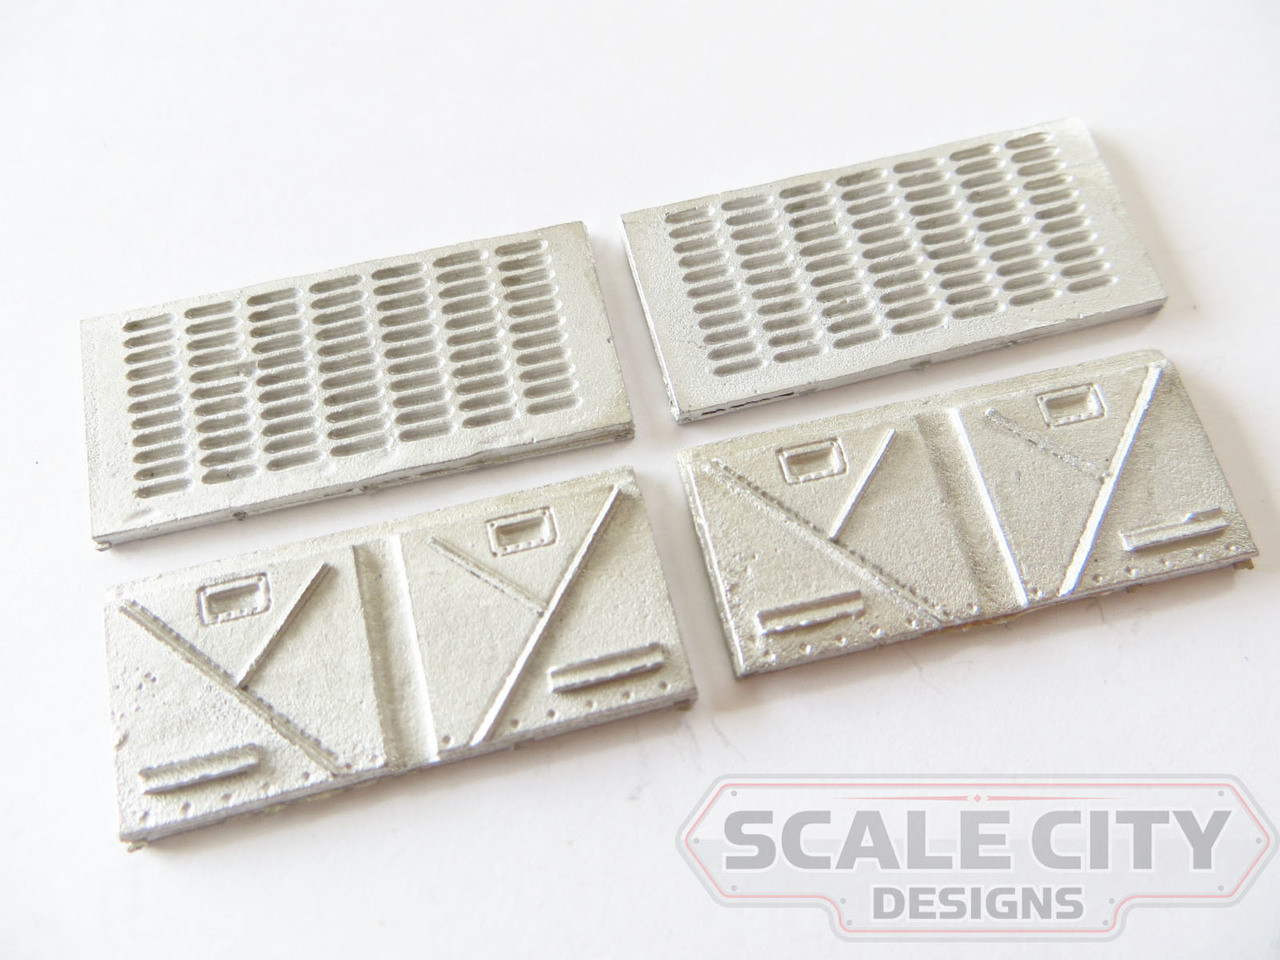 48-162 Southern Pacific Battery Box Covers FKA Keil Line O scale